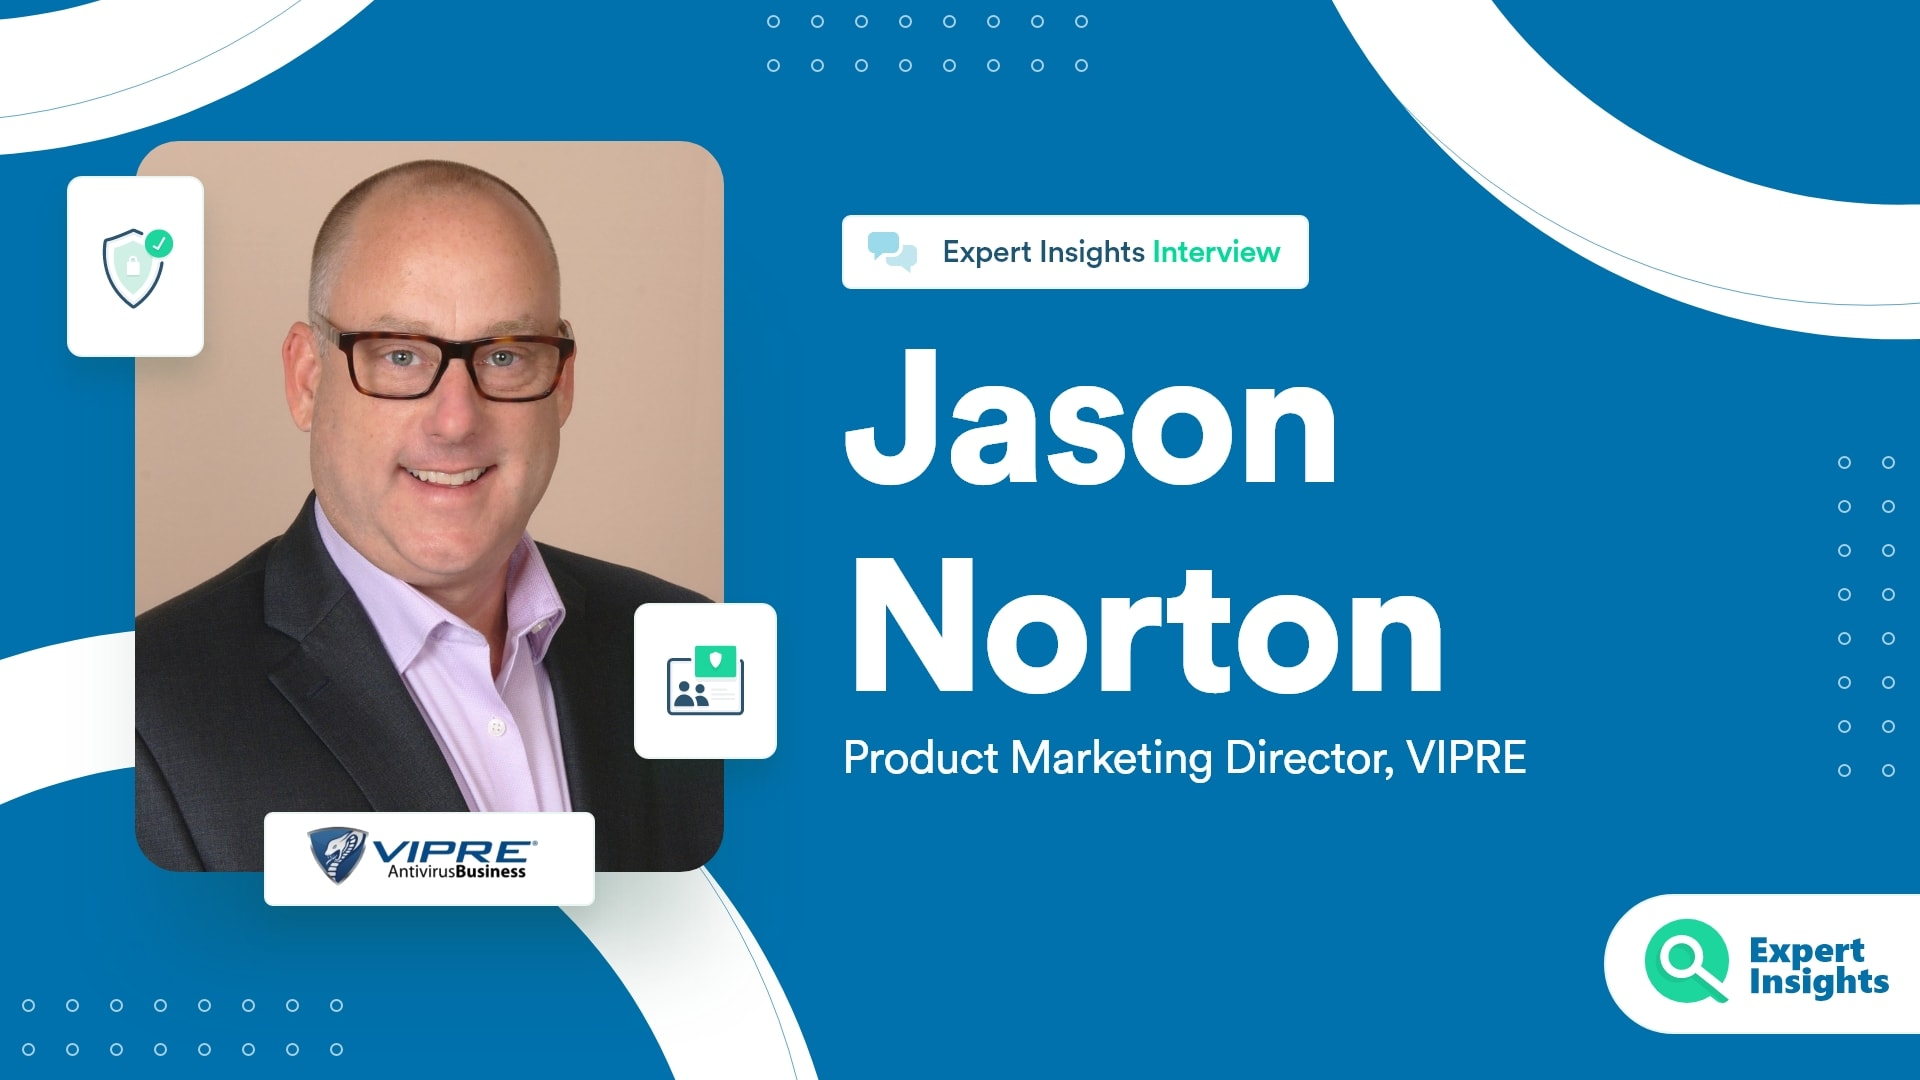 Expert Insights Interview With Jason Norton Of VIPRE